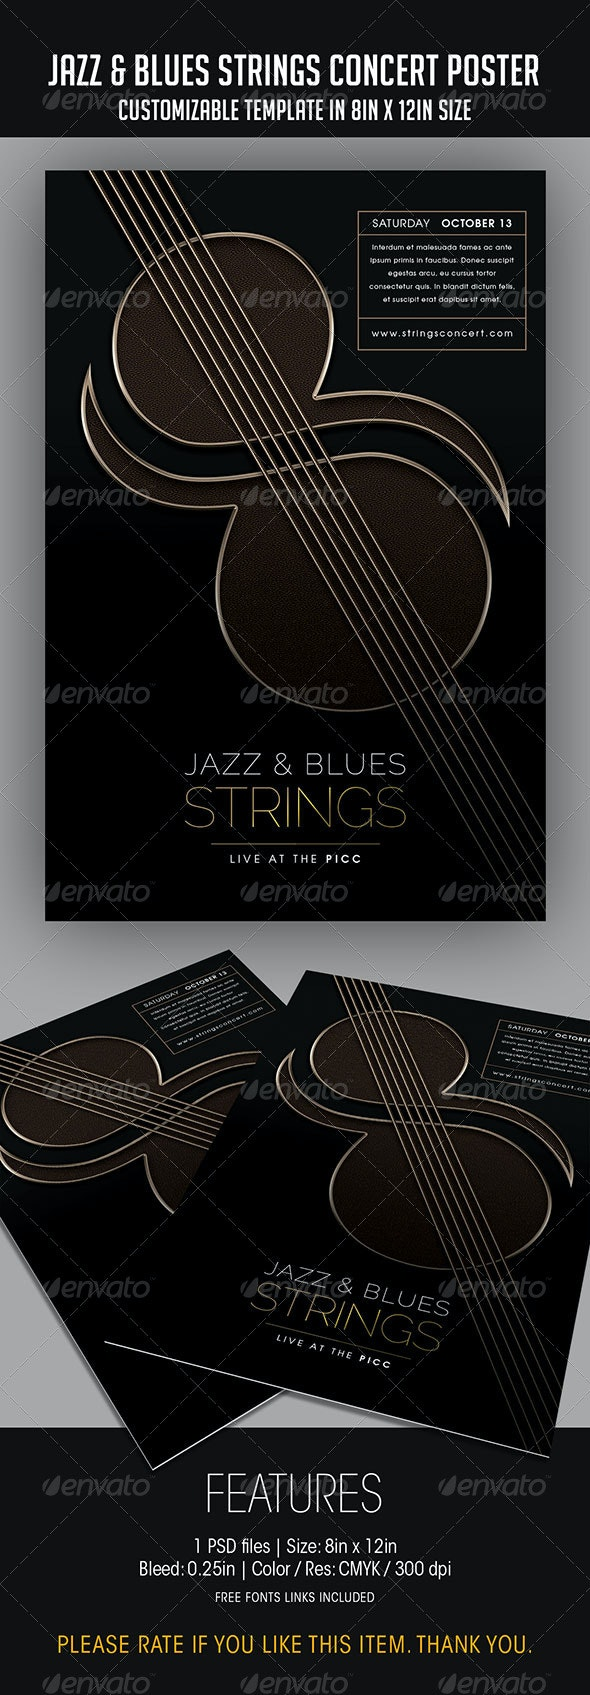 Jazz & Blues Strings Concert Poster - Concerts Events